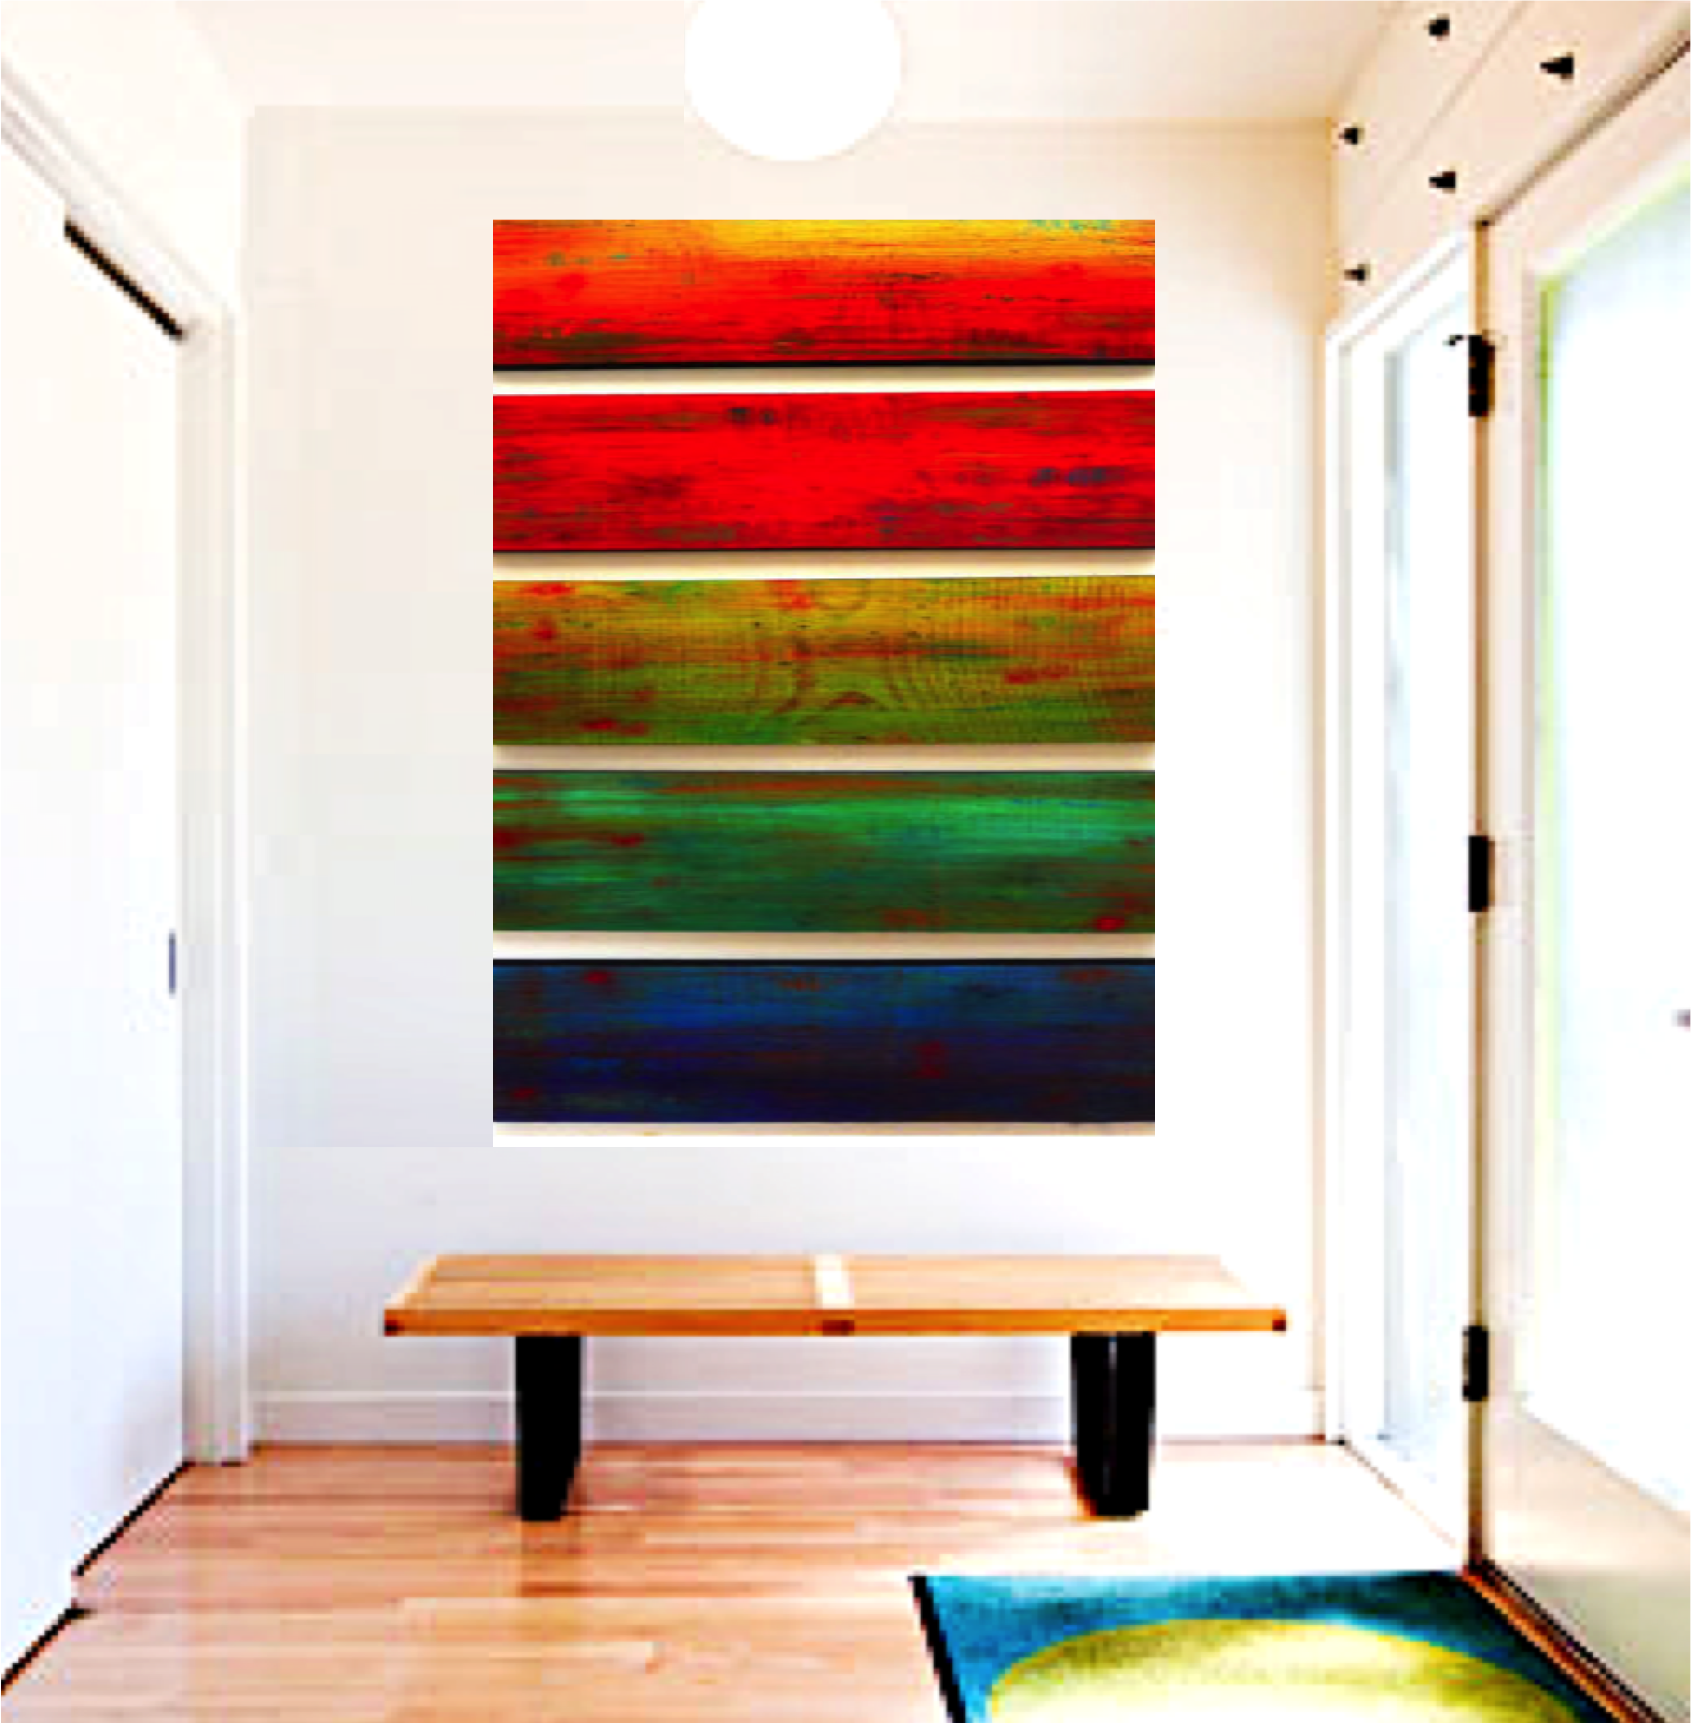 Home rosemary pierce modern art image of ombre wall art original wall sculpture wood wall decor colorful wall amipublicfo Choice Image